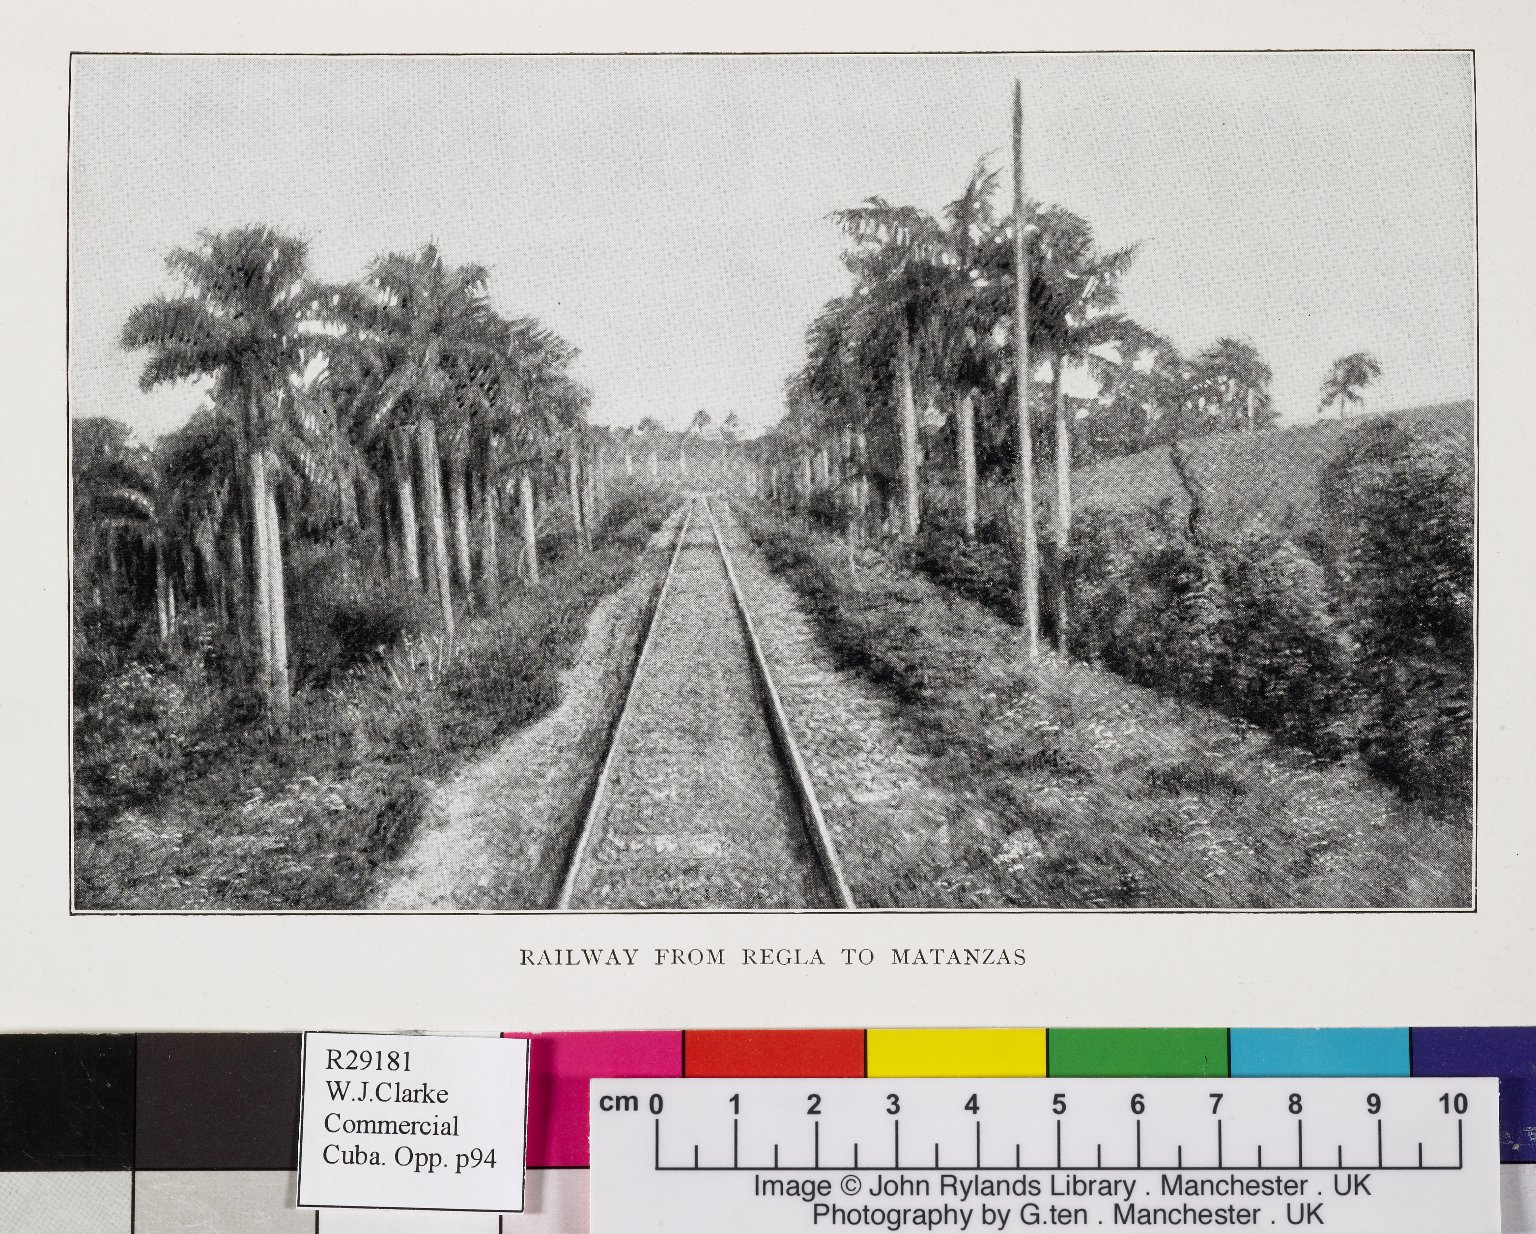 Railway from Regla to Matanzas